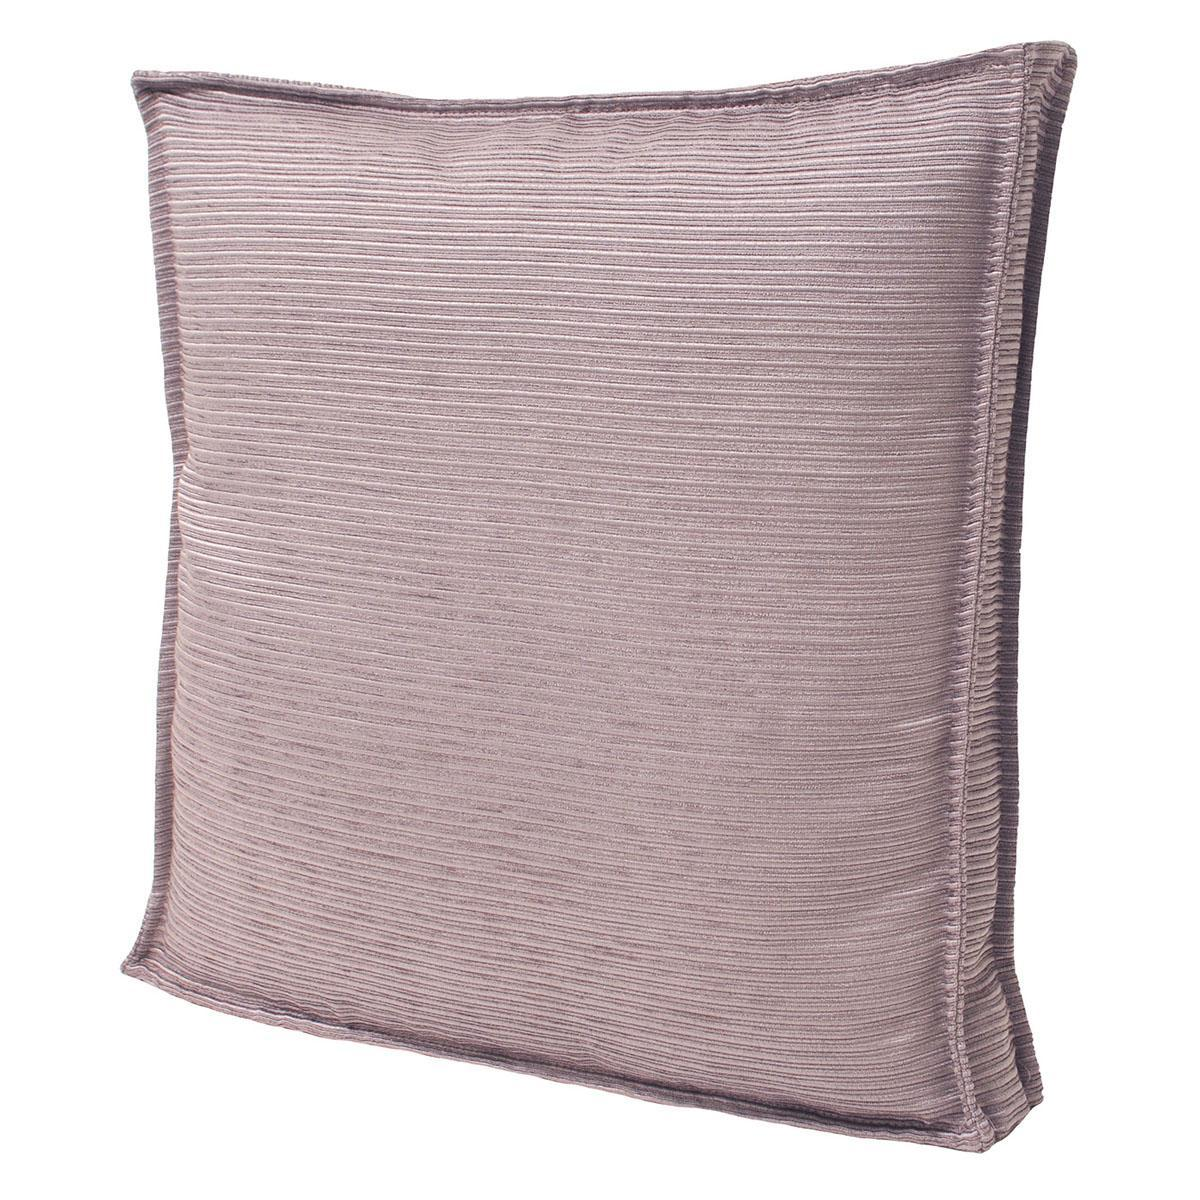 Riva Cushions And Throws Amari C/Cover Heather Picture